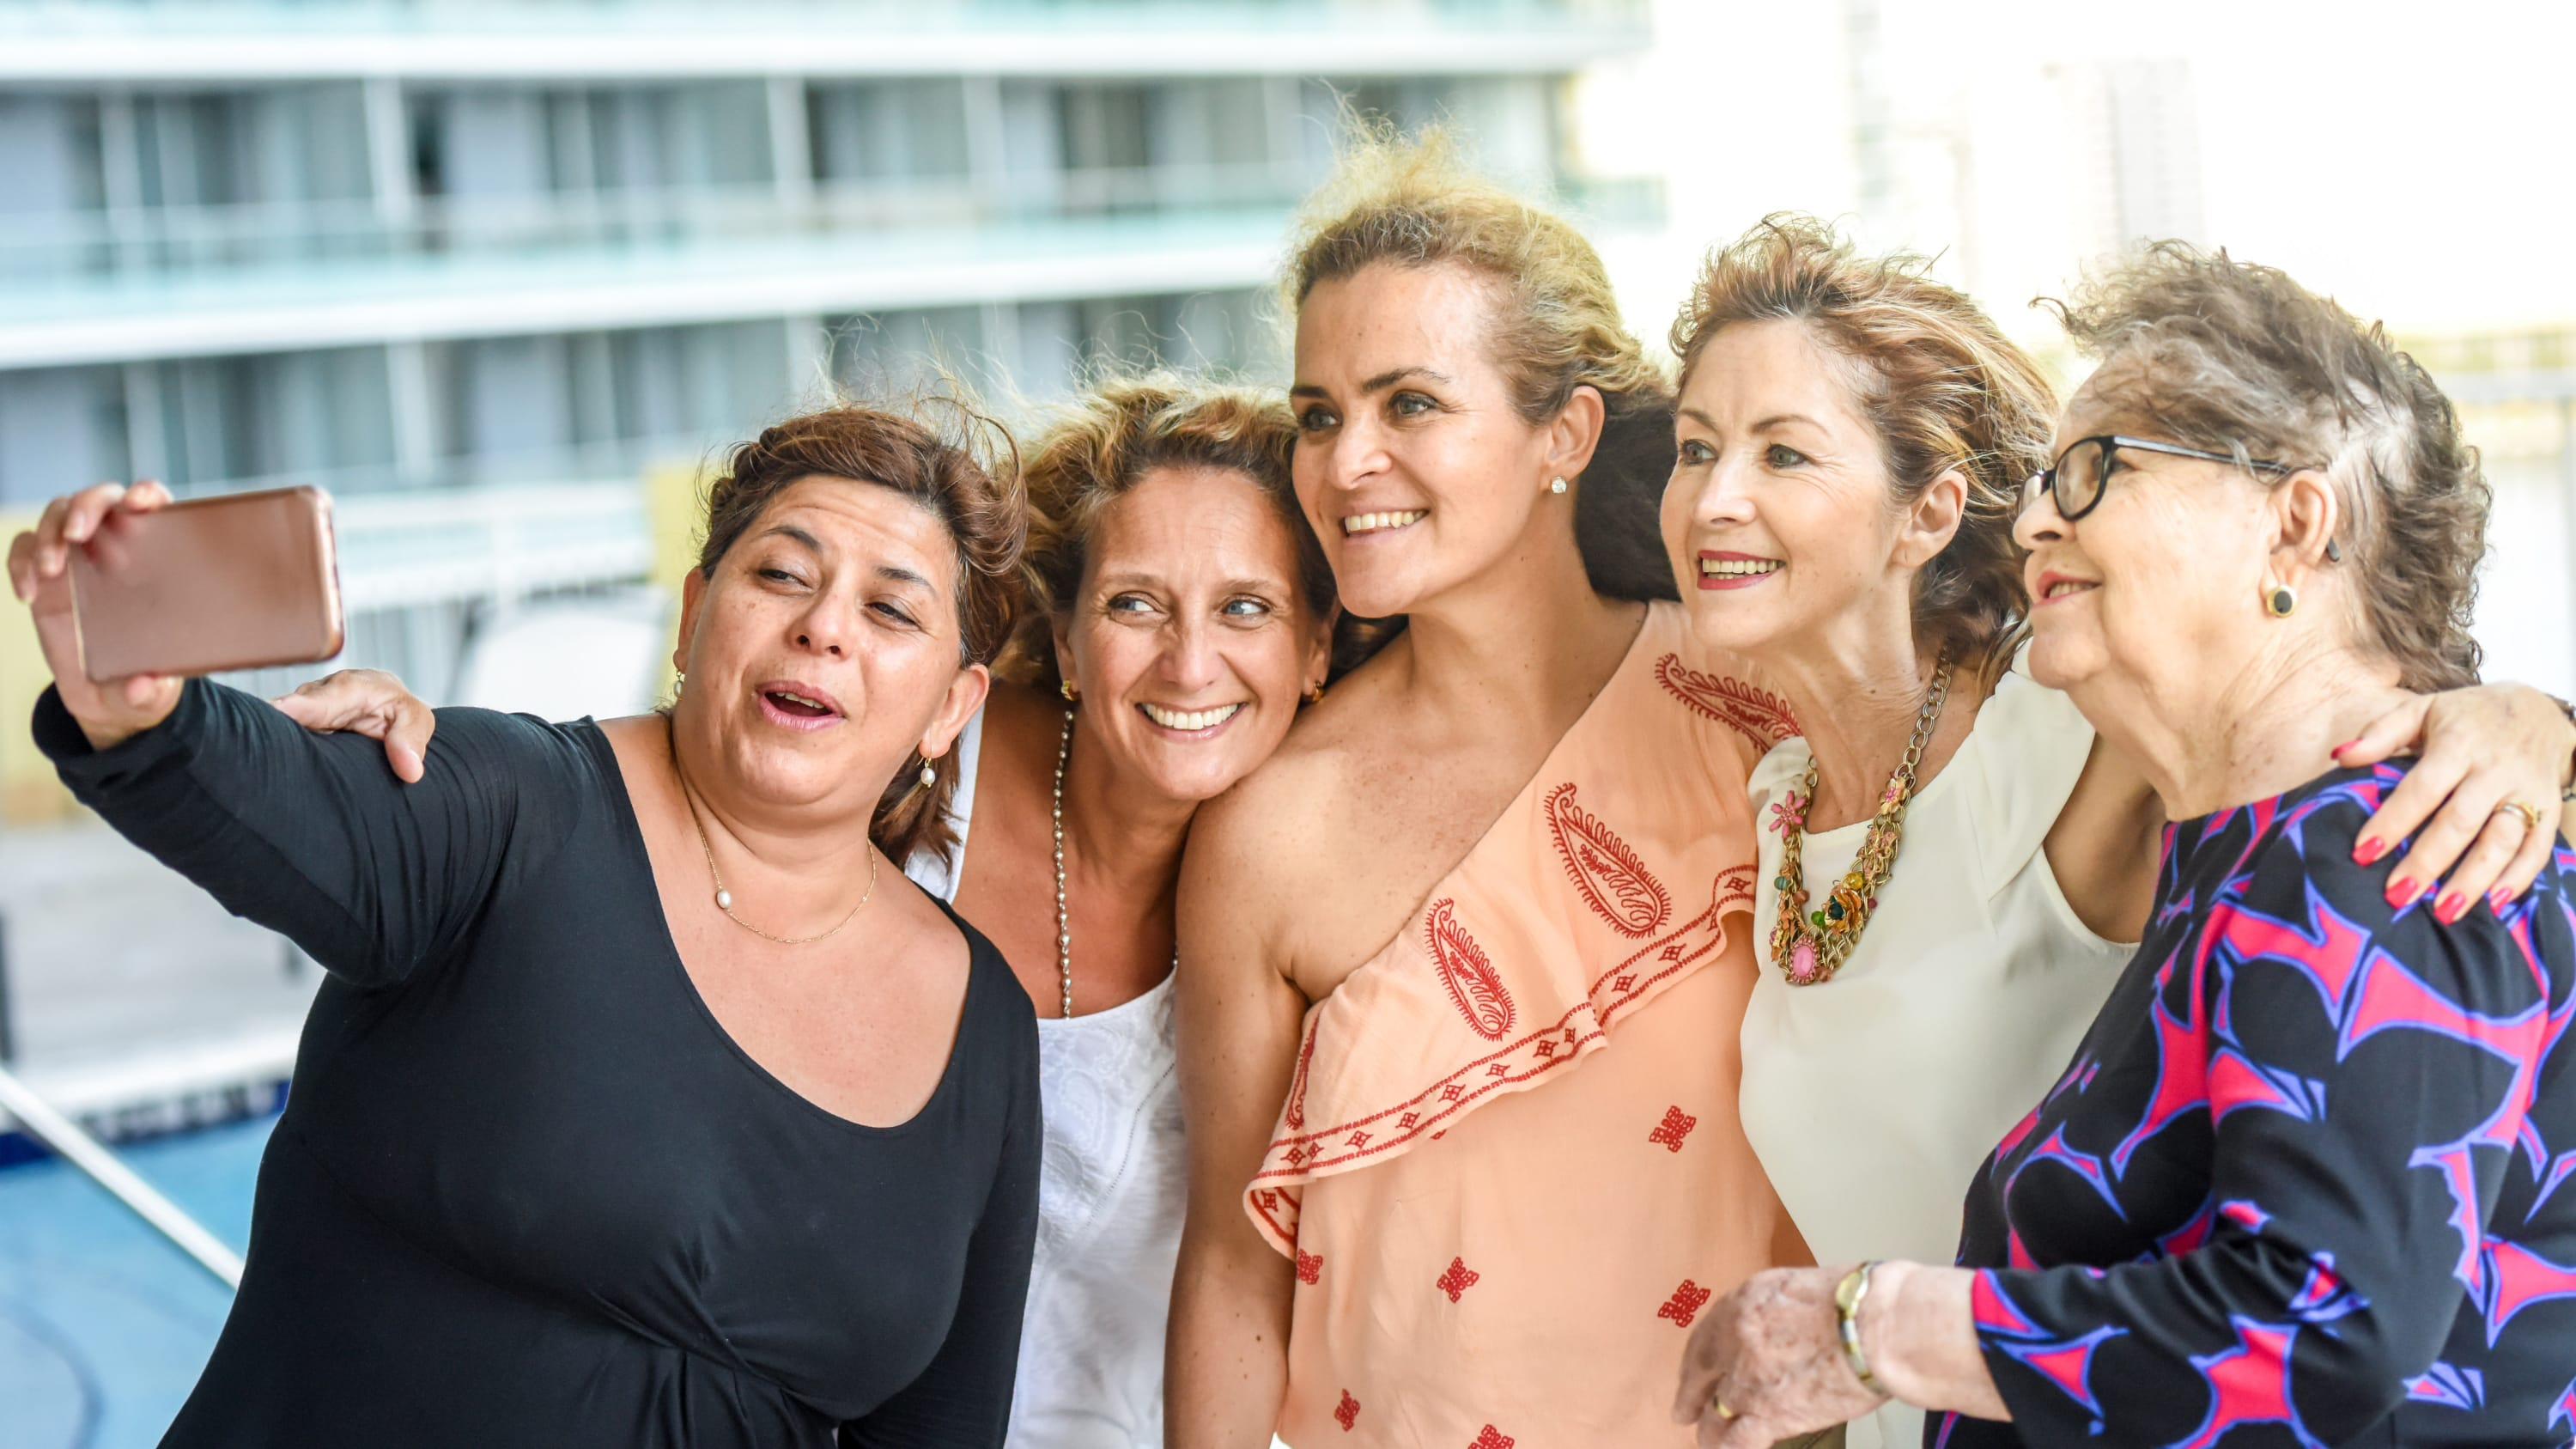 A group of women who could be cancer survivors take a selfie together.